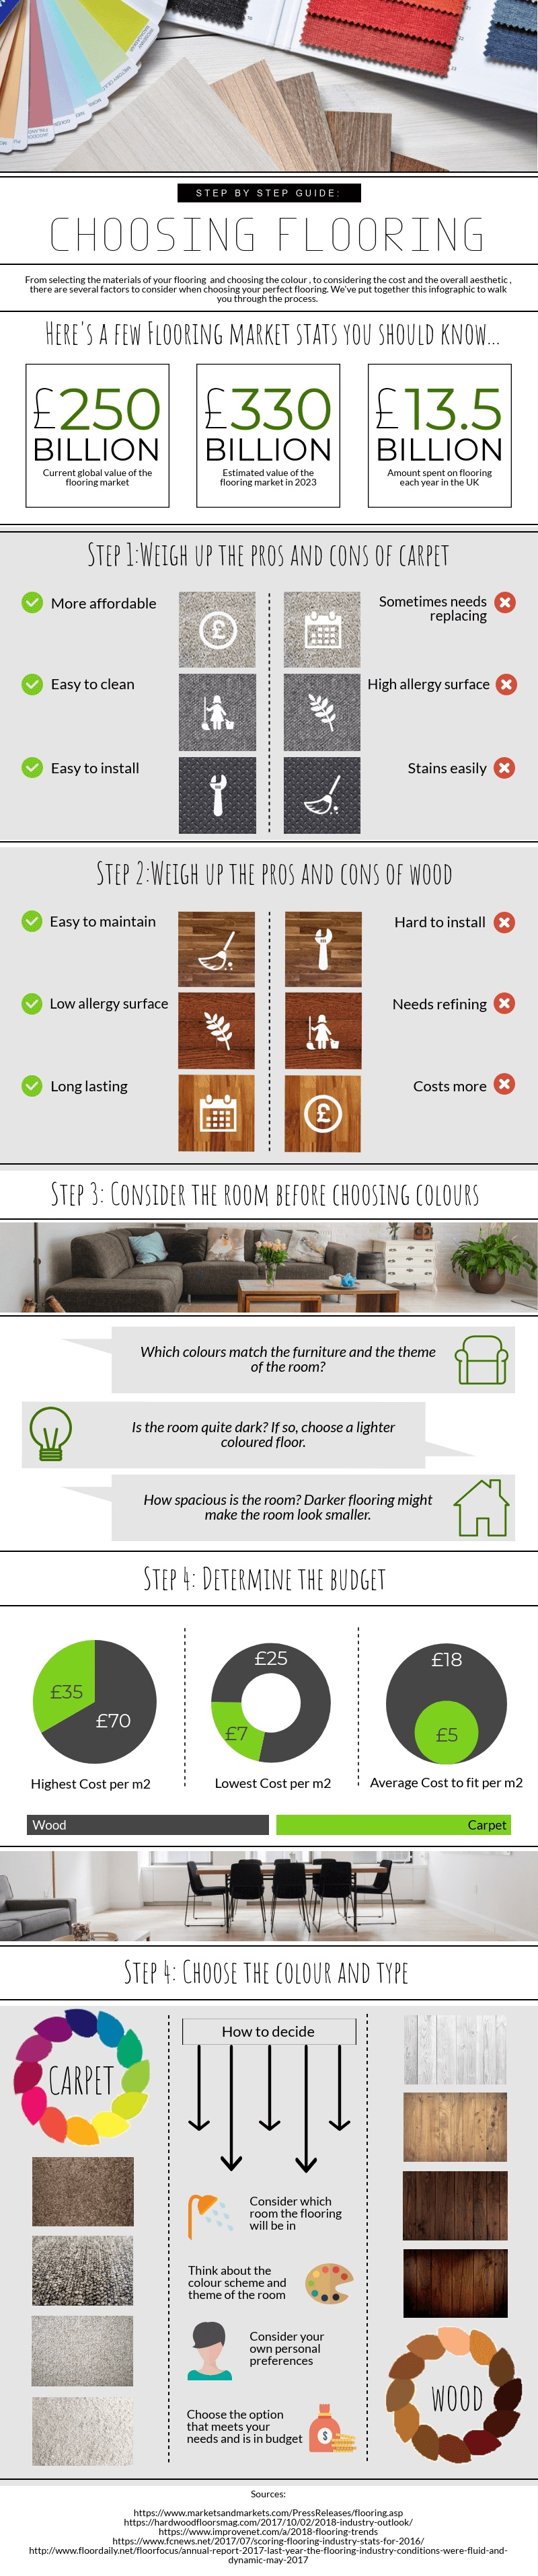 Choosing The Perfect Flooring - Infographic